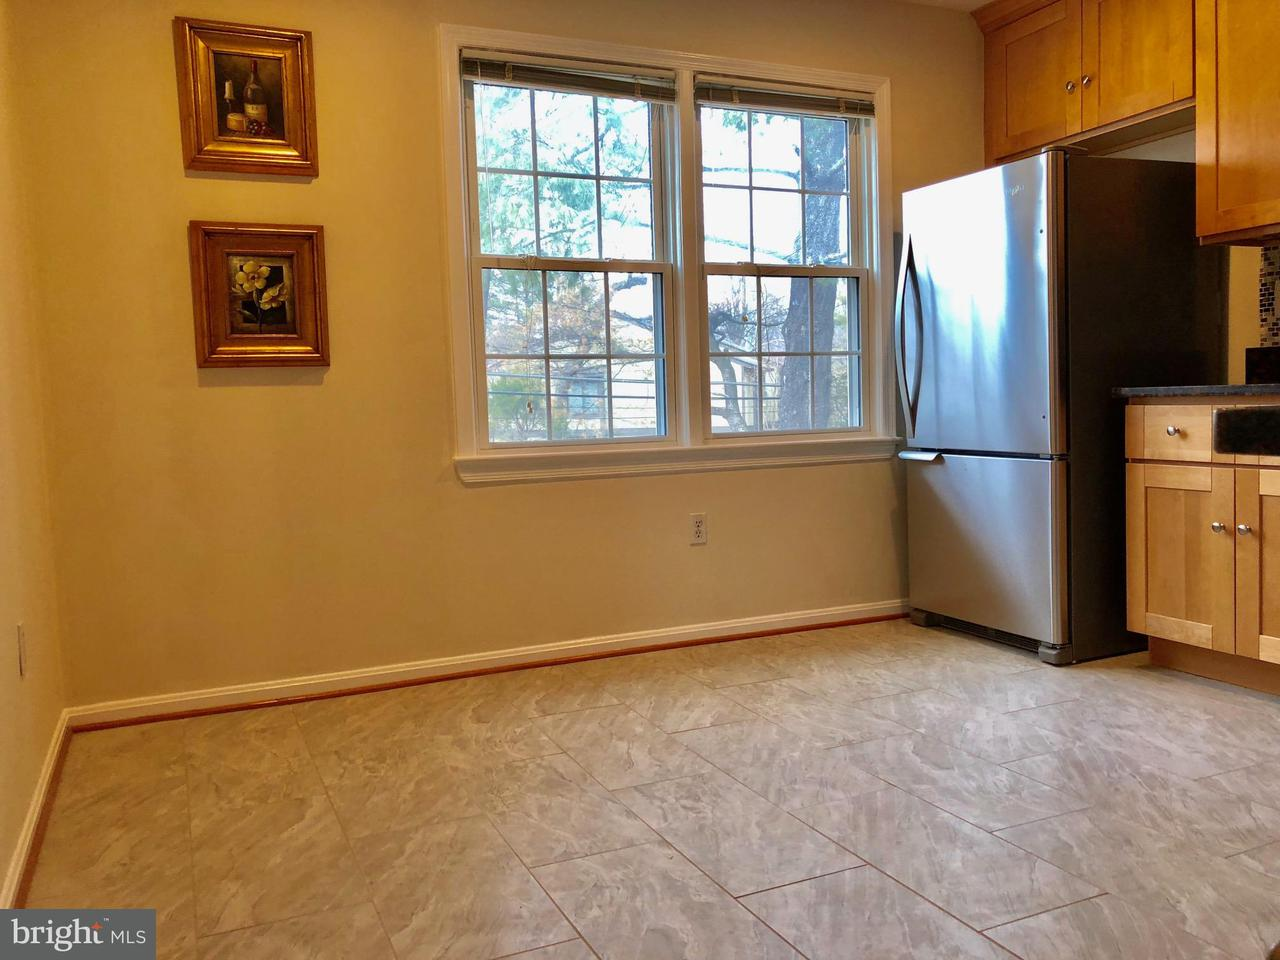 Additional photo for property listing at 6891 Chelsea Road 6891 Chelsea Road McLean, Virginia 22101 Estados Unidos